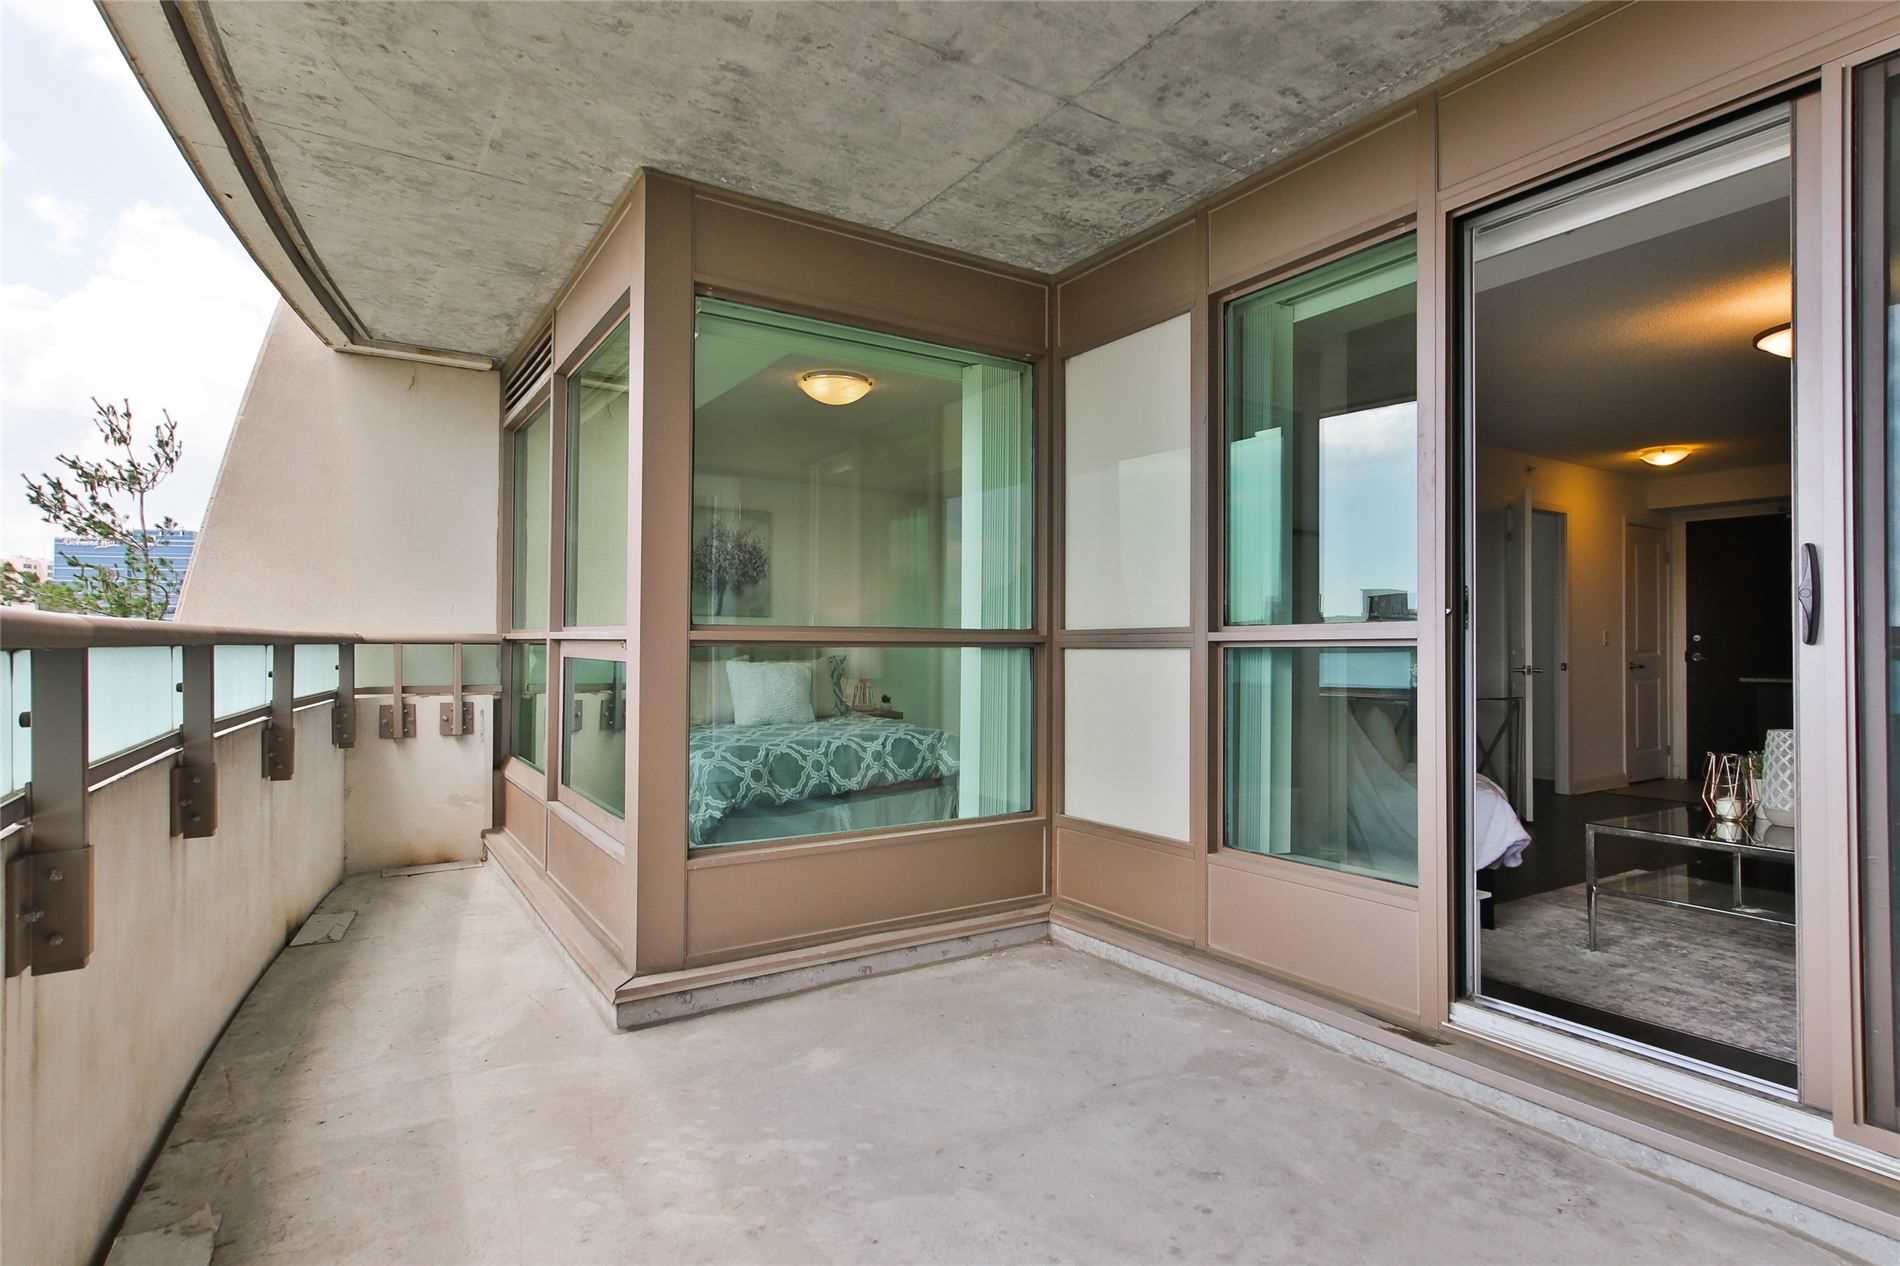 209 - 75 Norman Bethune Ave - Beaver Creek Business Park Condo Apt for sale, 2 Bedrooms (N5305489) - #25